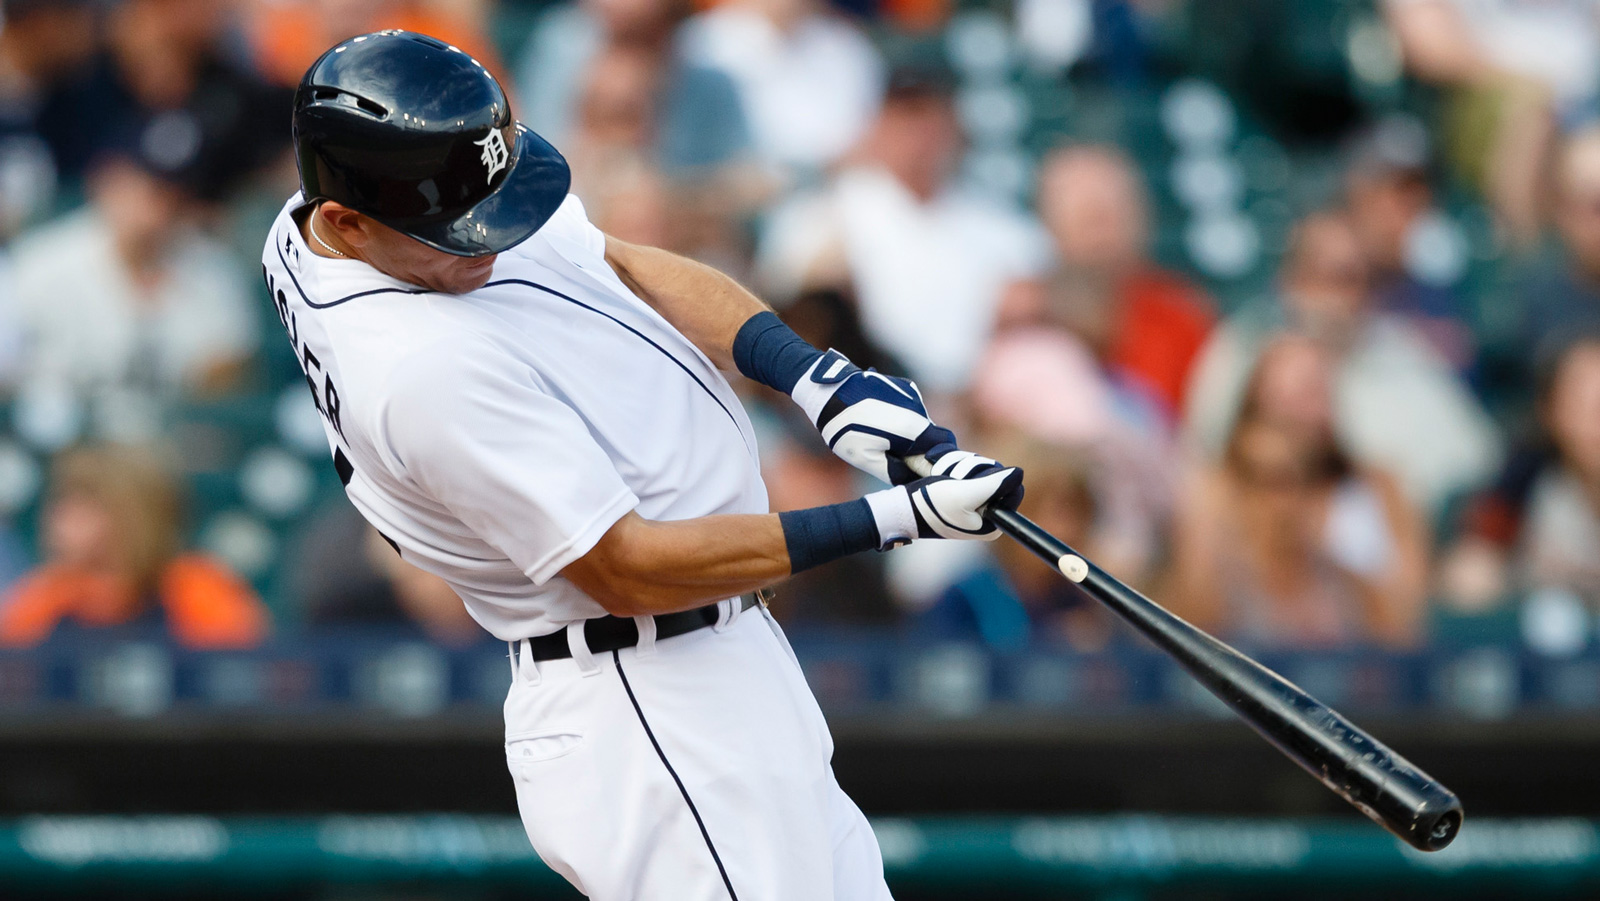 Kinsler, Tigers try to keep momentum going